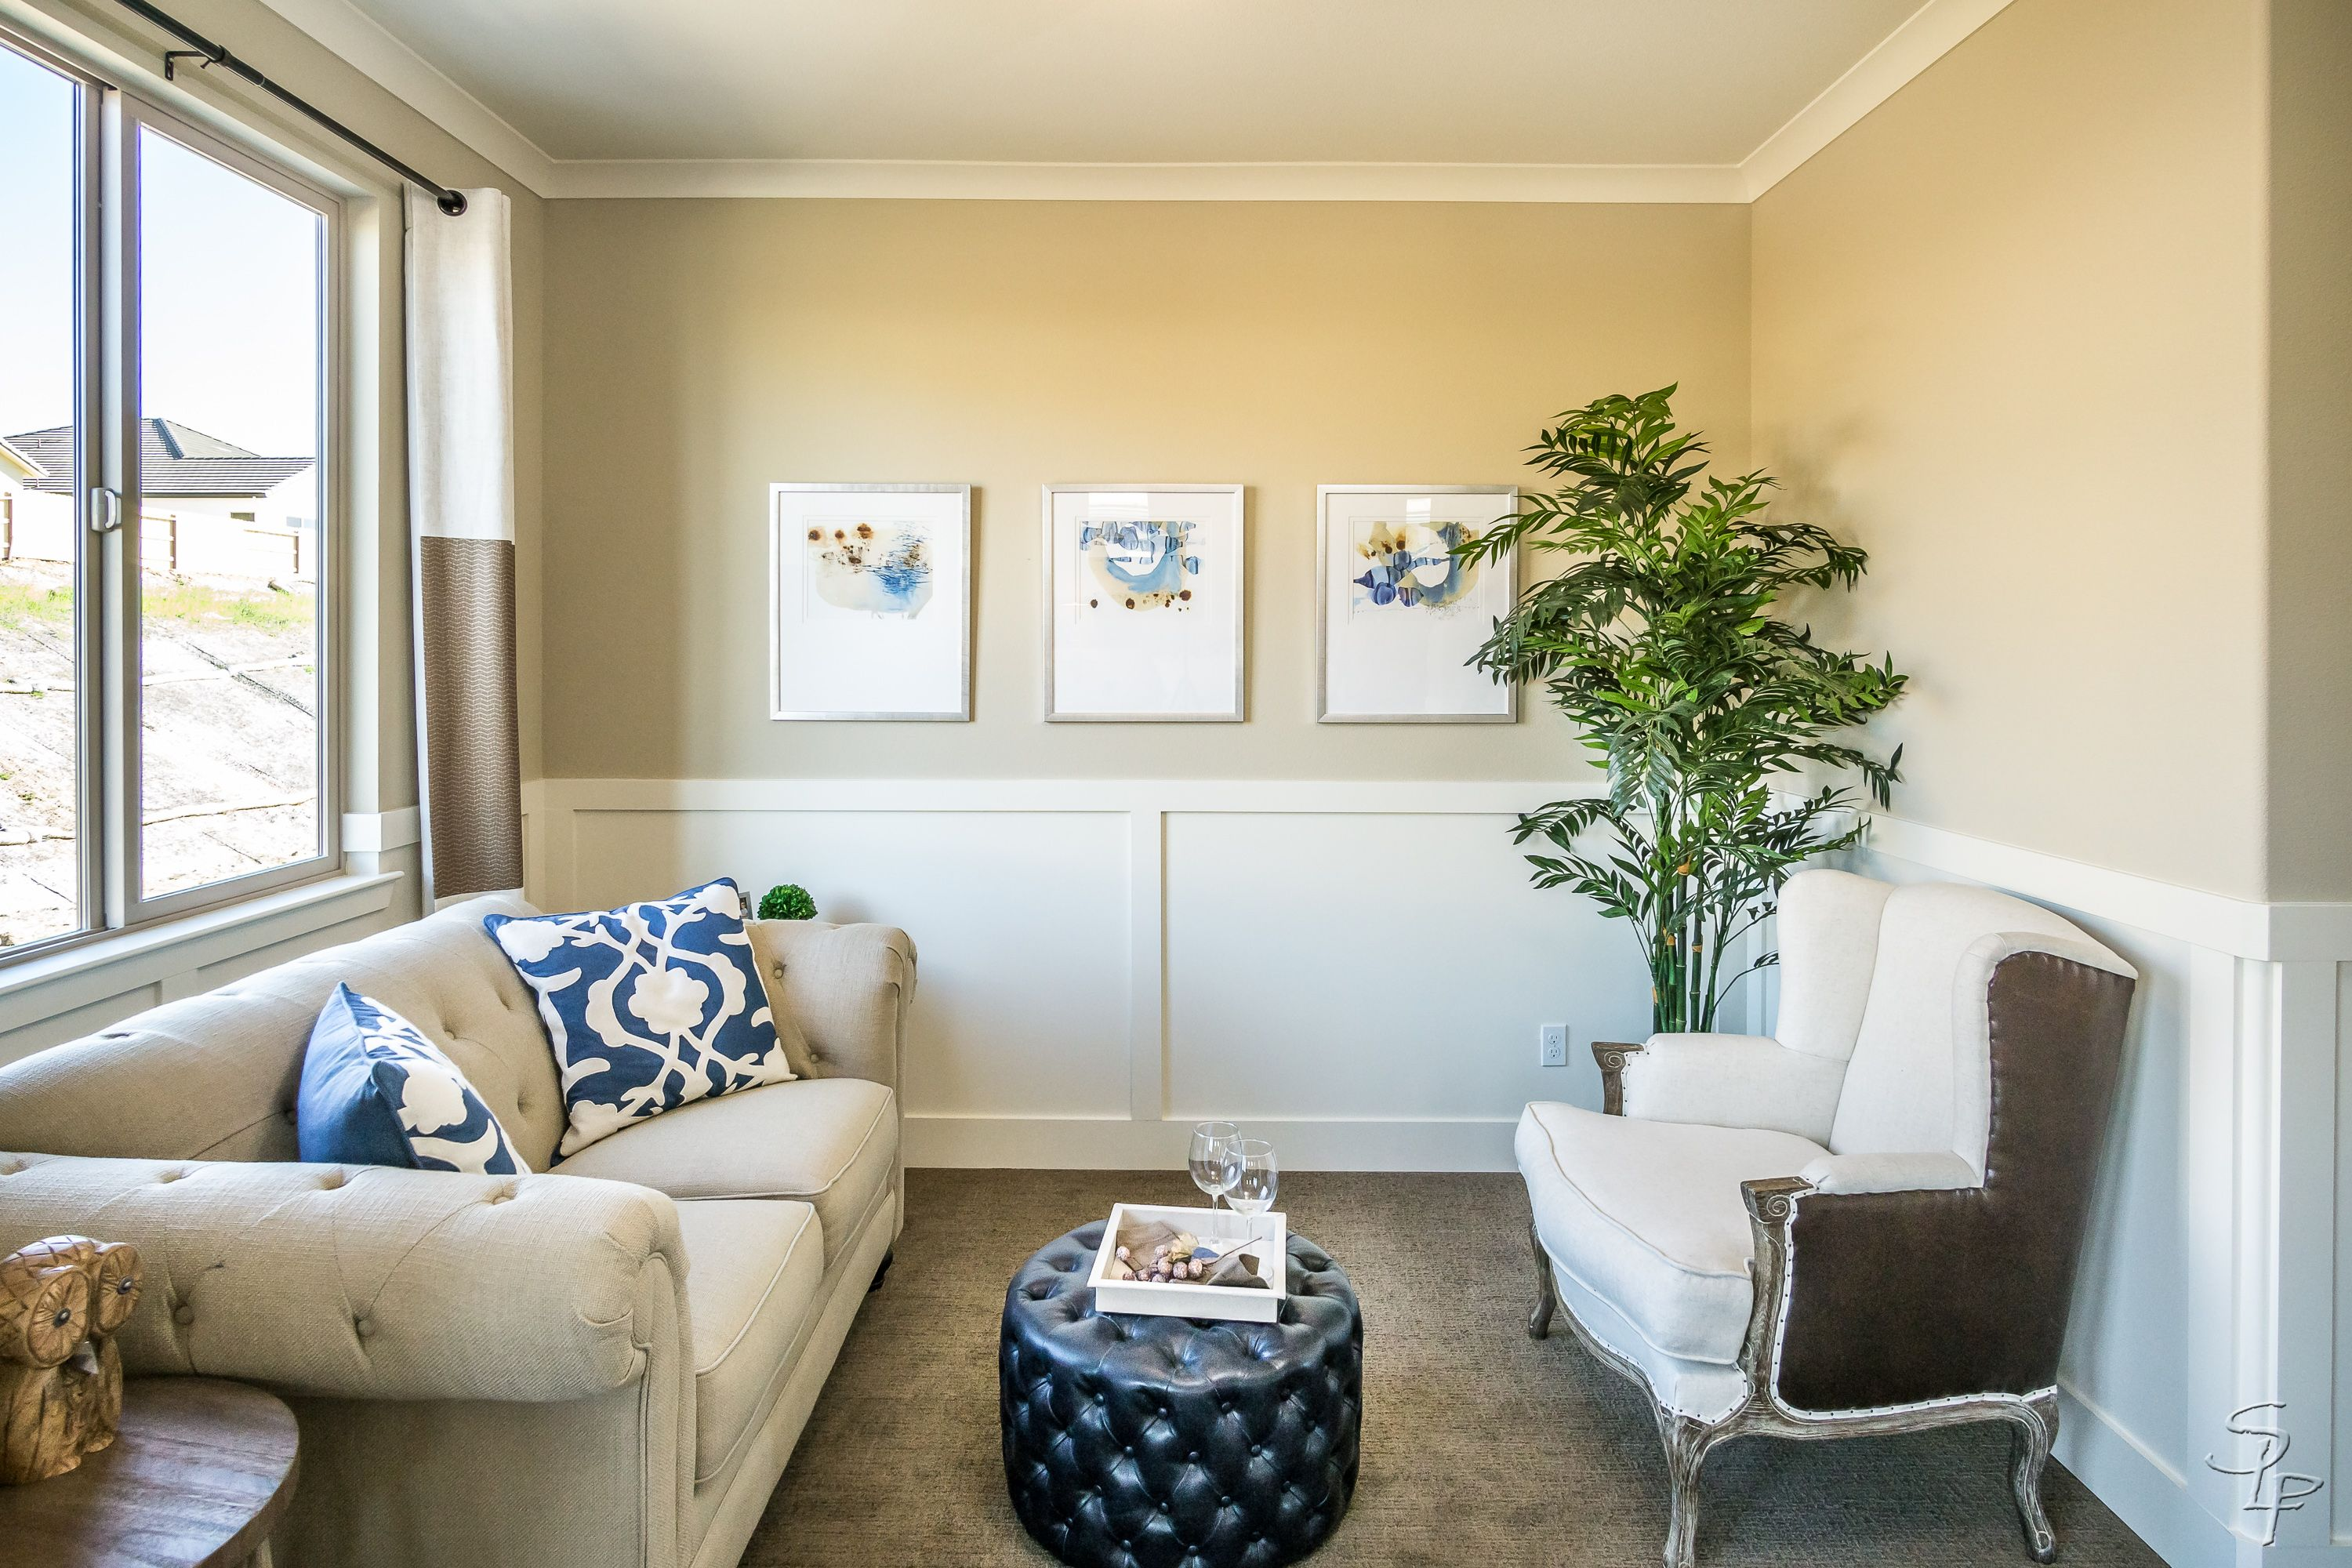 Living Area featured in The Capitola By Anderson Homes in Santa Cruz, CA